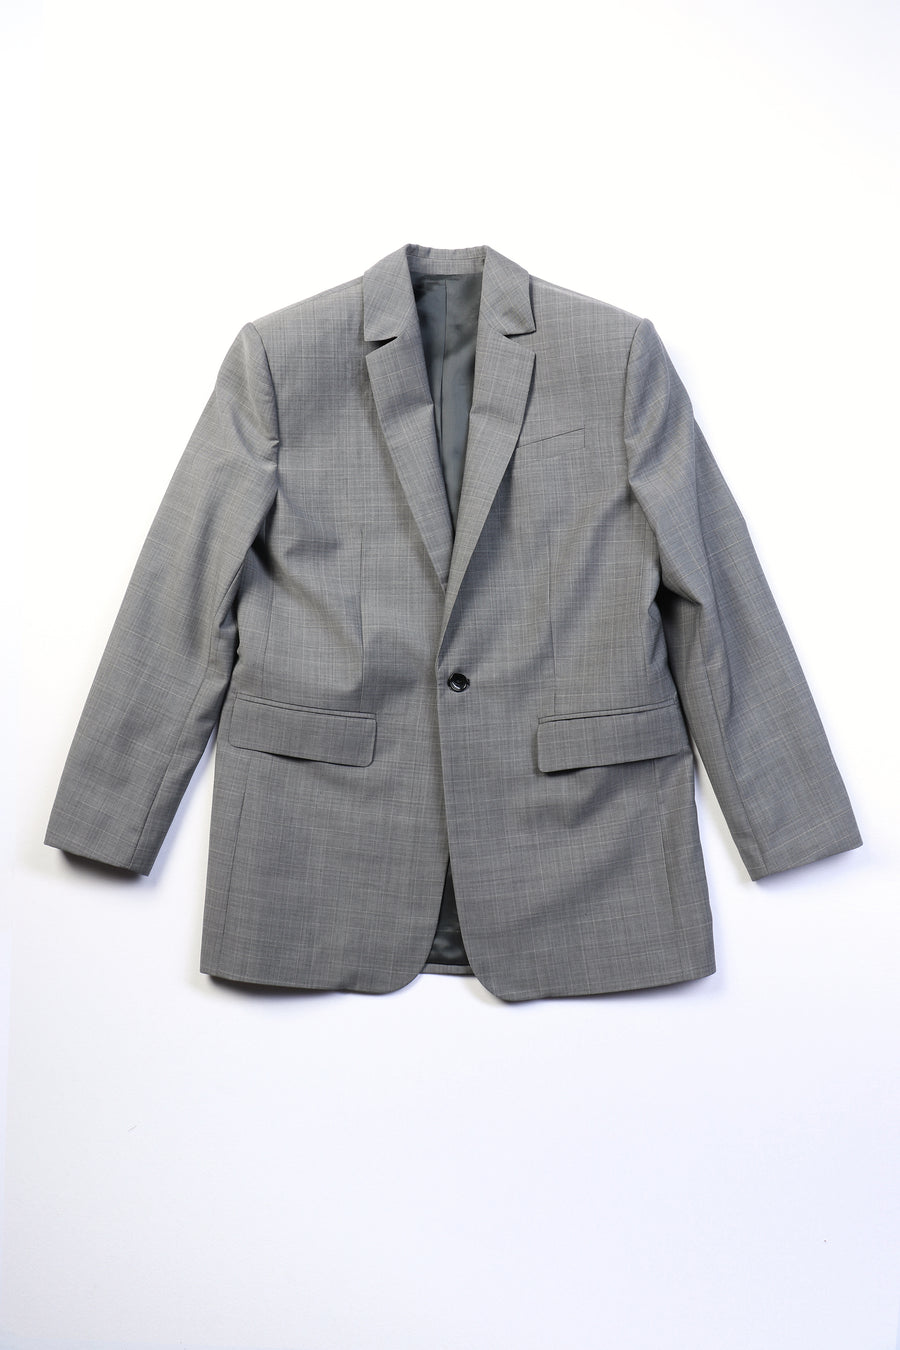 GREY OVERSIZED SINGLE BREASTED BLAZER